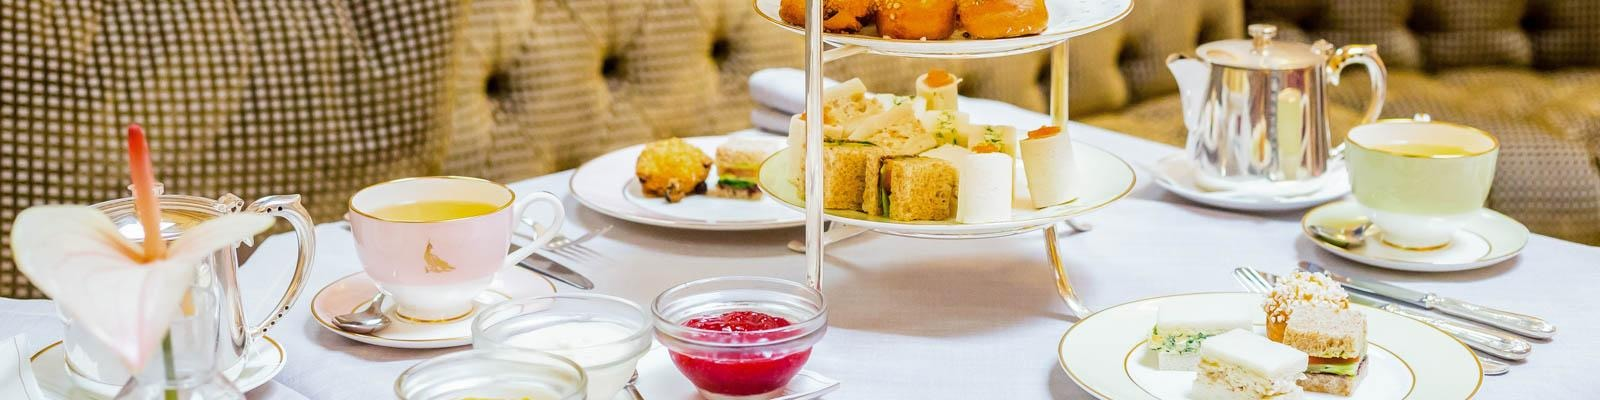 The Do's & Don'ts of Afternoon Tea in London